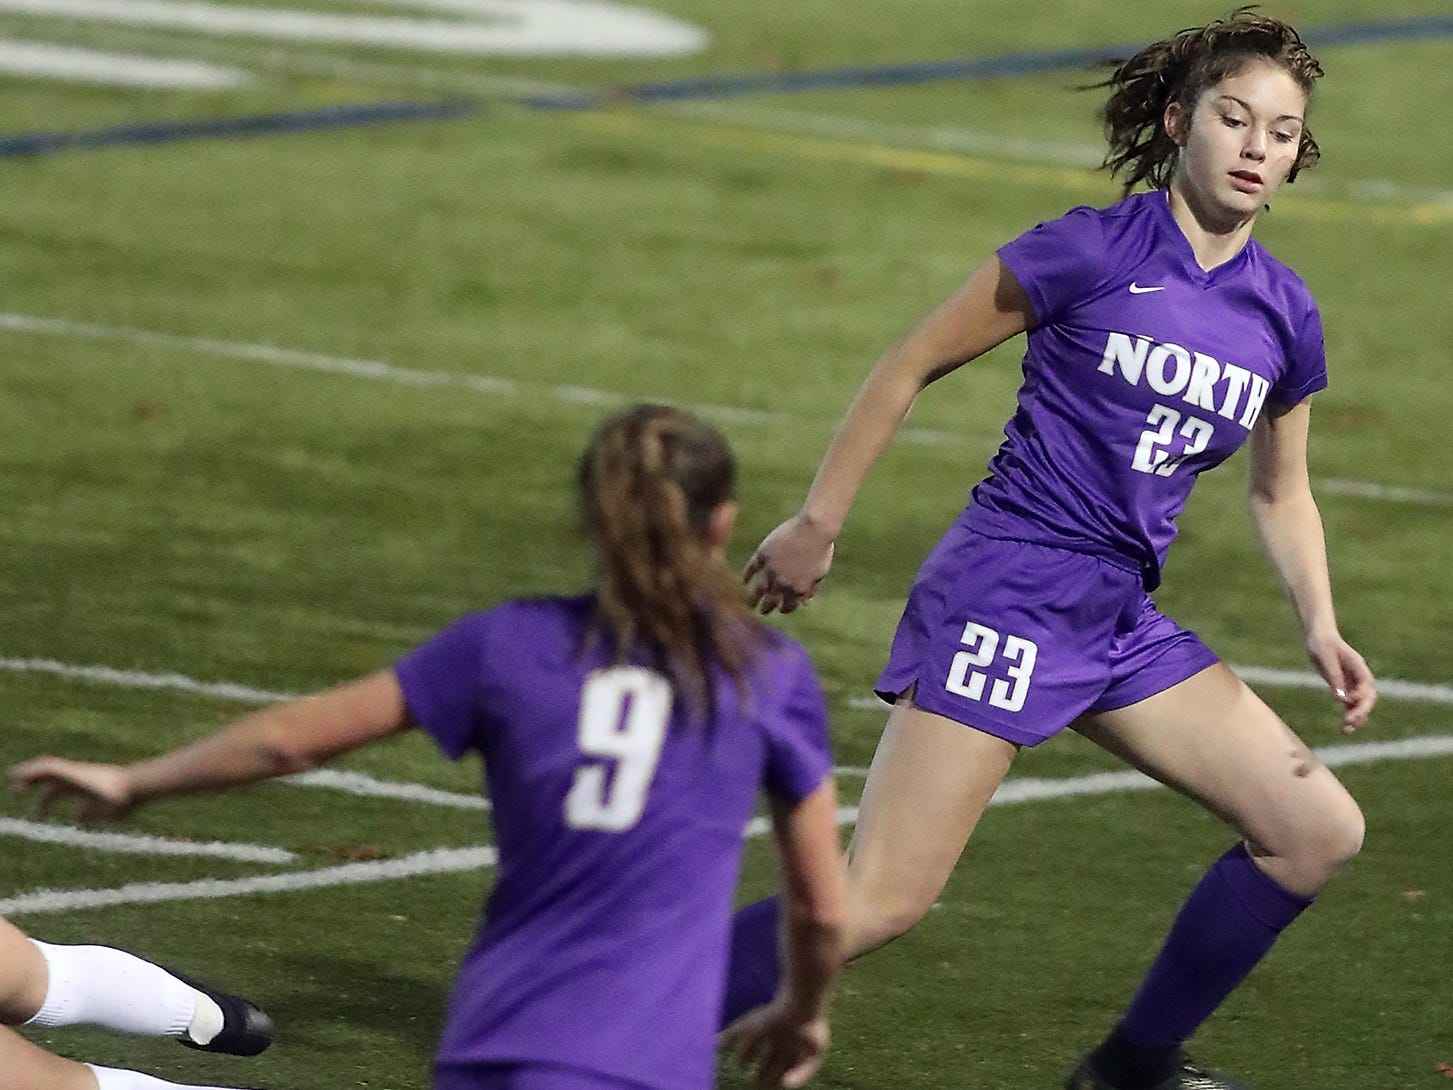 North Kitsap vs Orting girls soccer in Poulsbo on Tuesday, October 30, 2018.